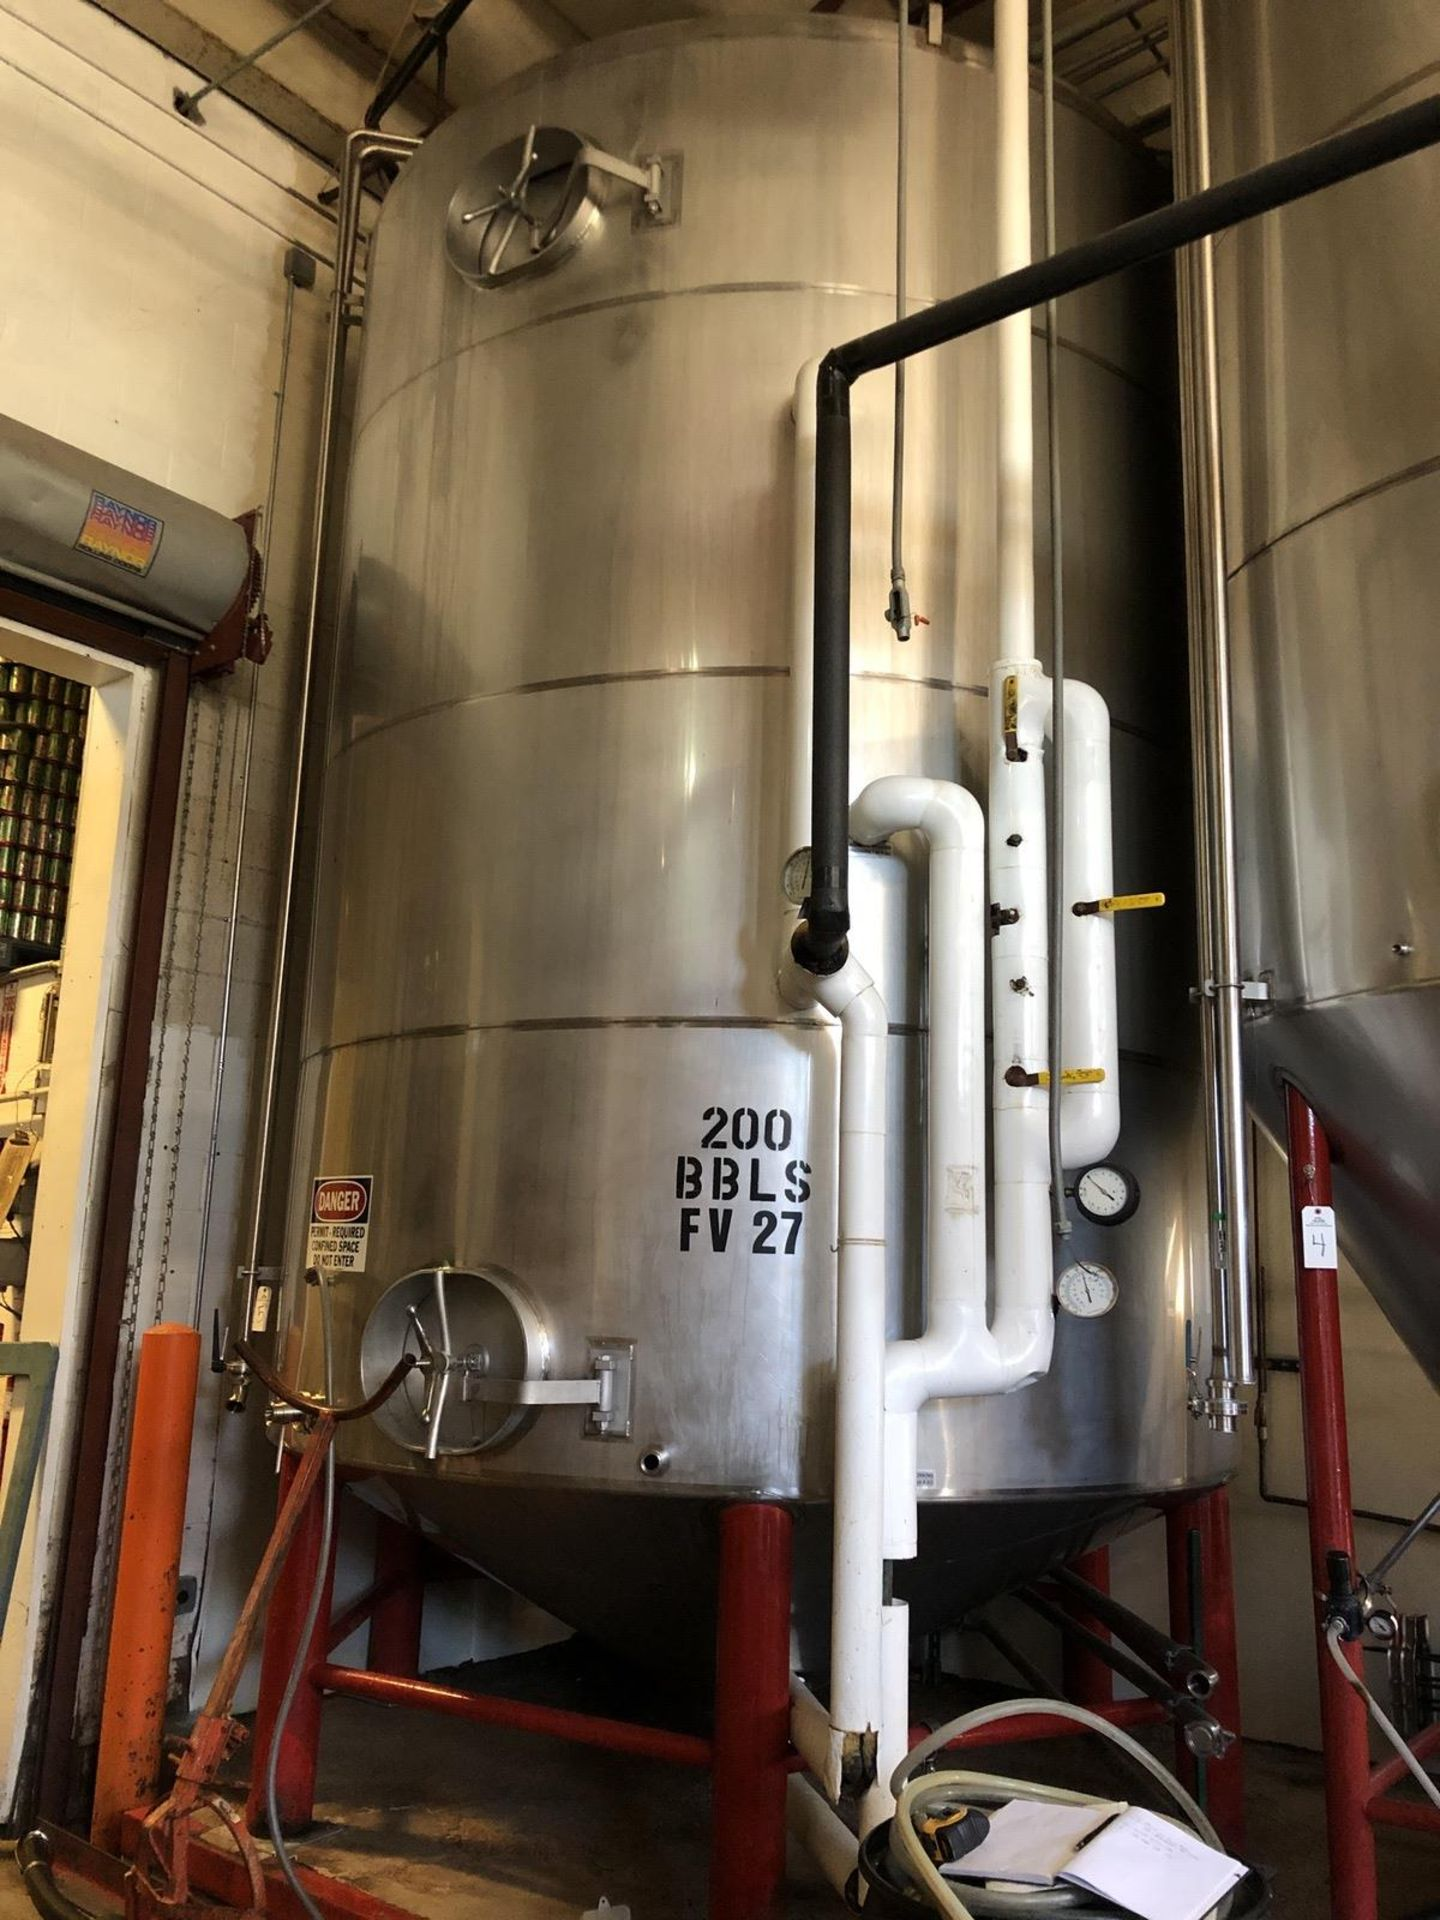 Lot 5 - Santa Rosa 200 BBL Fermenter, Cone Bottom, Glycol Jacketed, Stainless Steel, Approx | Rig Fee: $3300